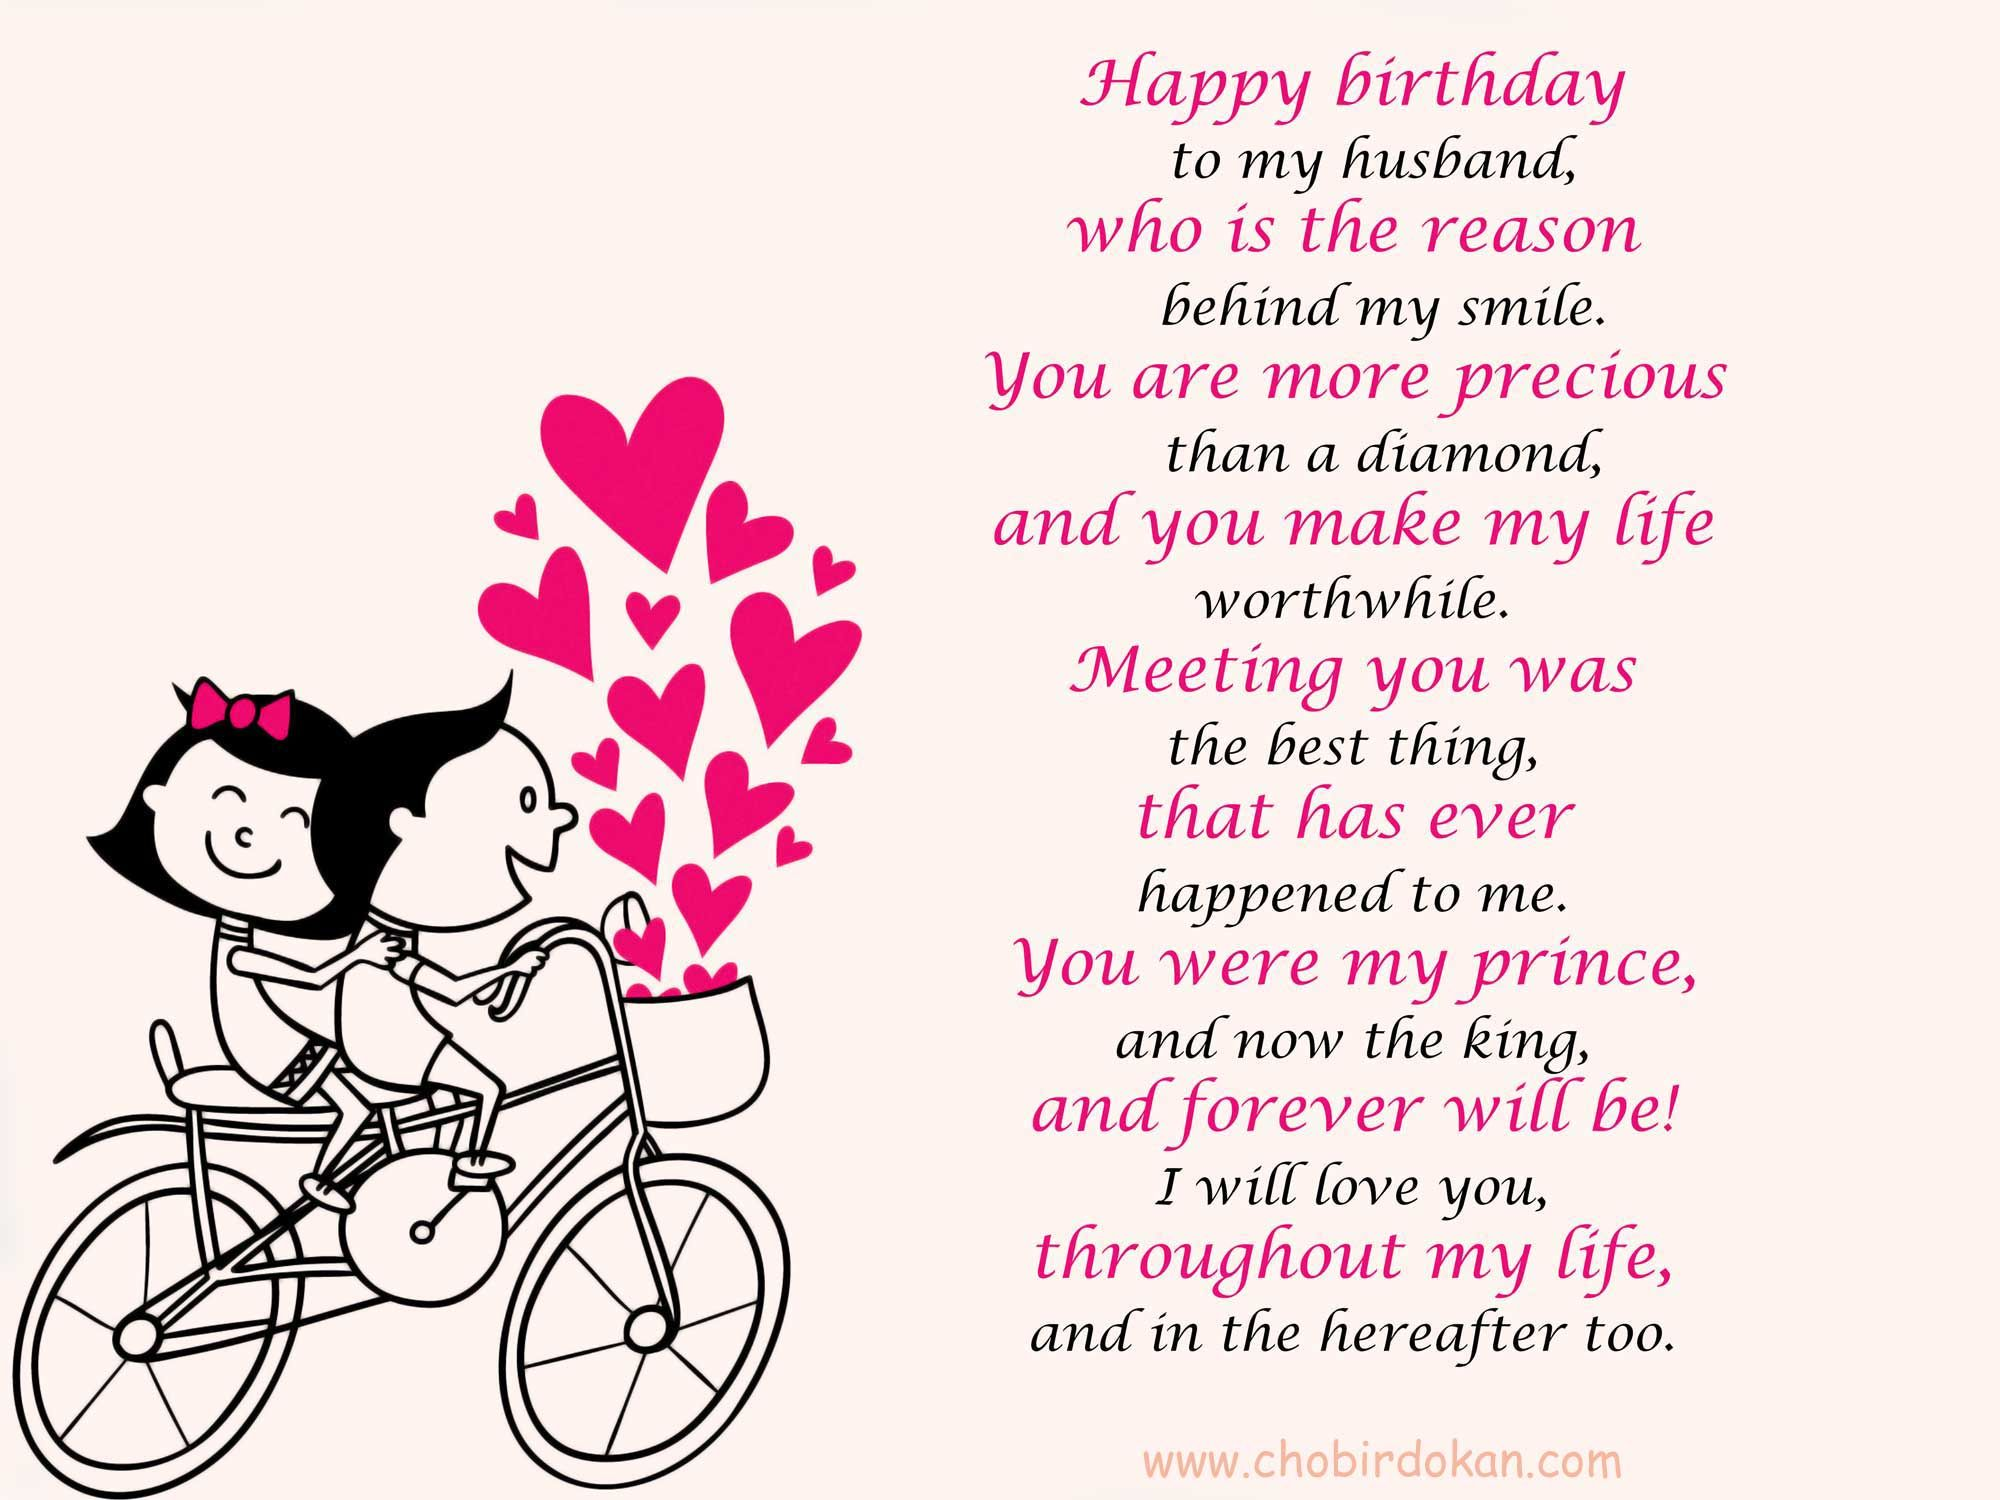 cute happy birthday poem for husband Birthday poems for